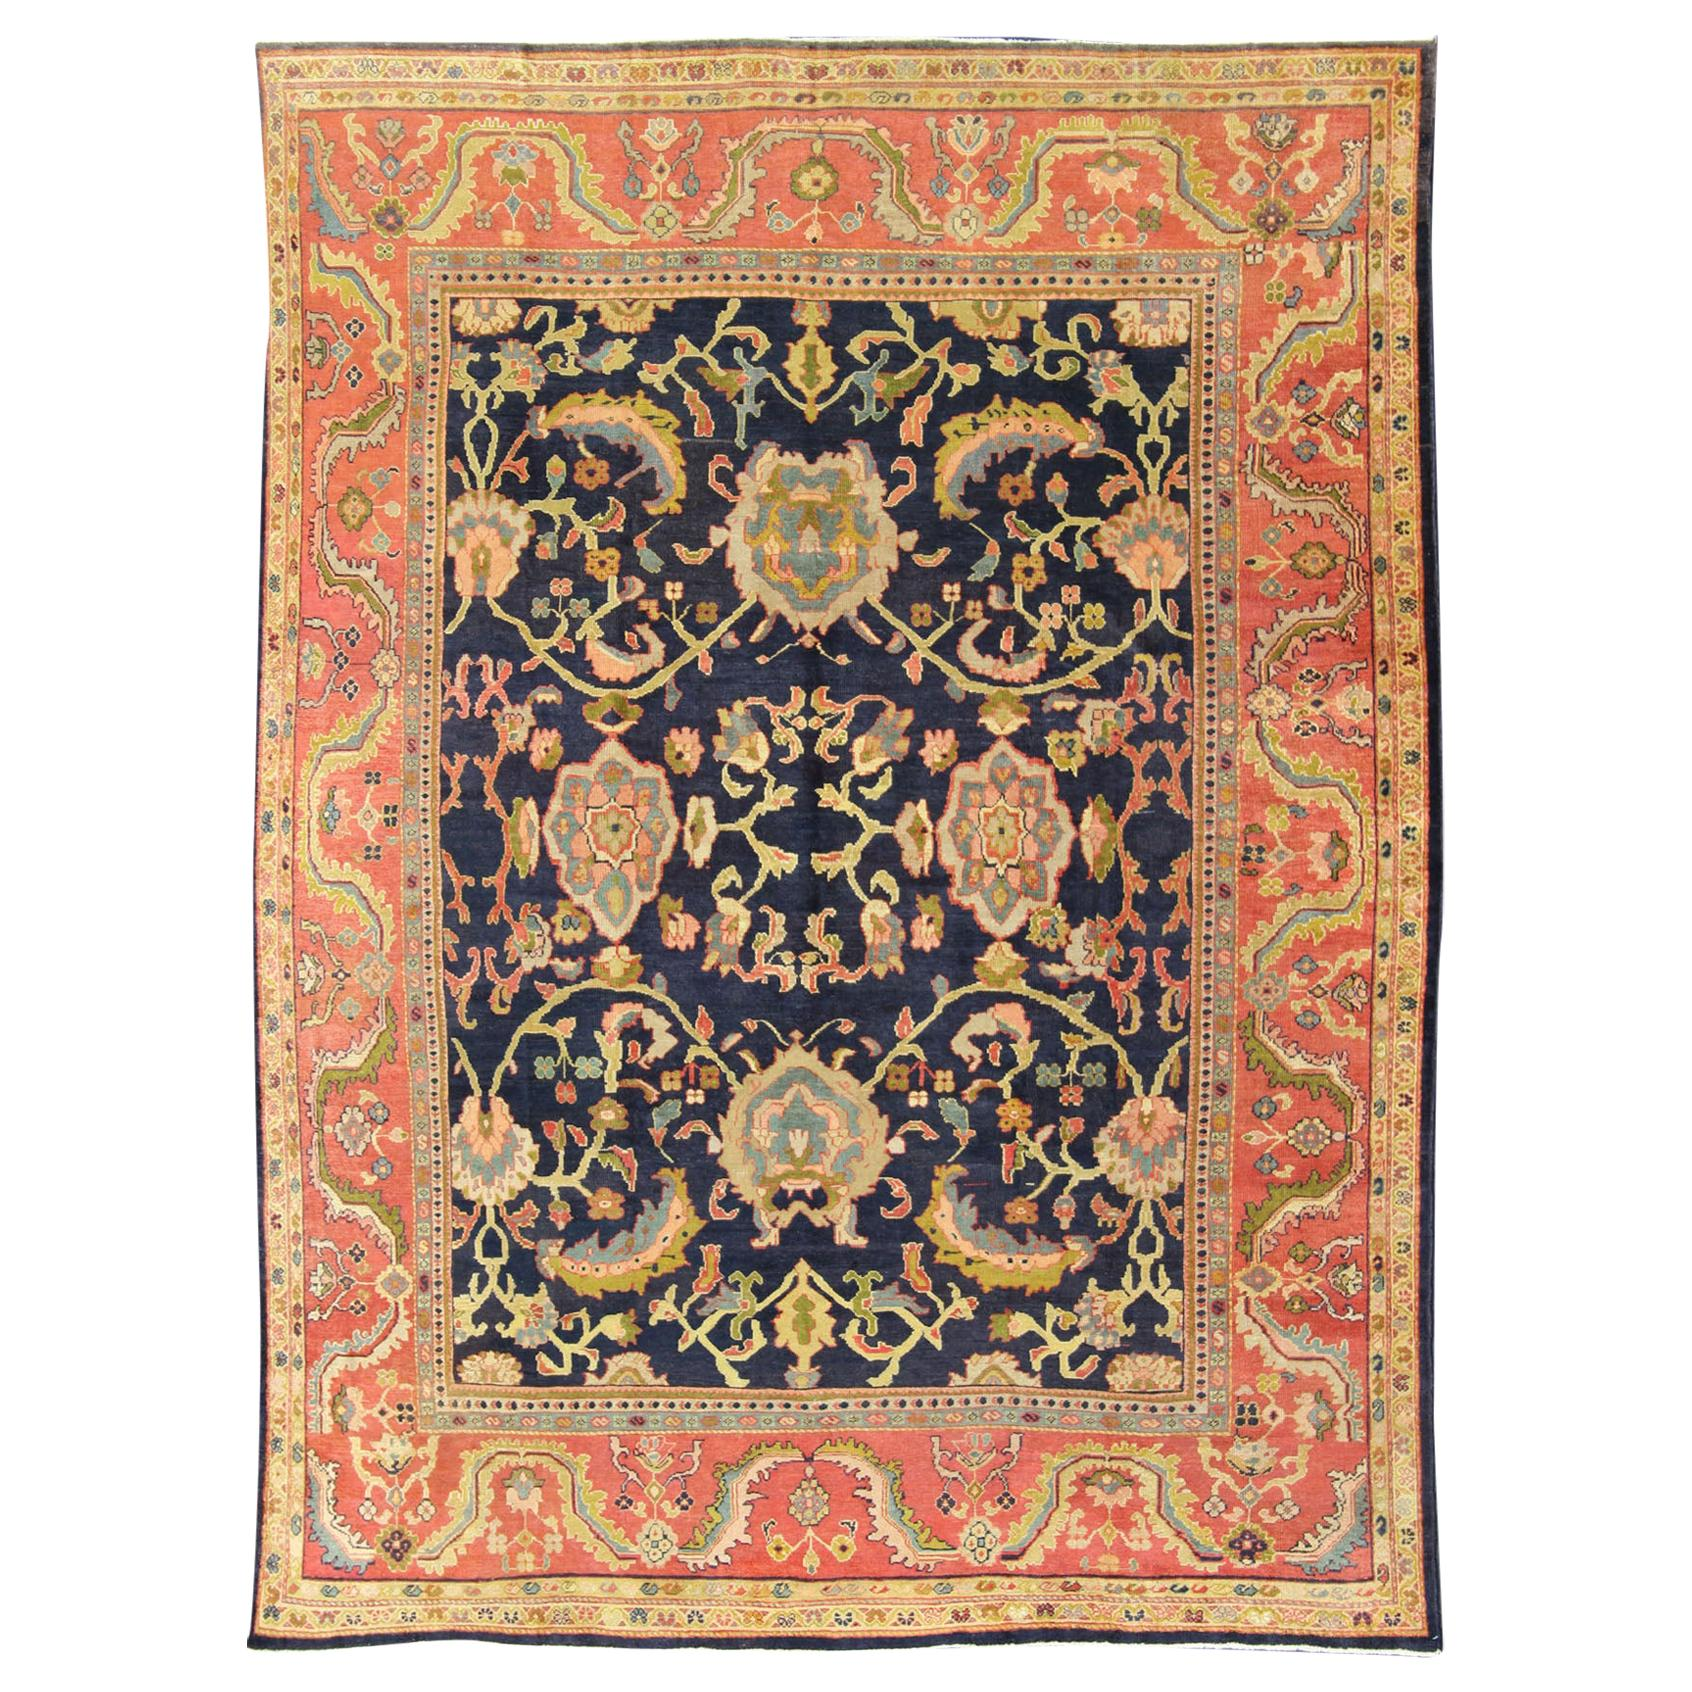 Amazing Antique Persian Sultanabad Carpet in Navy Blue Background and Rose Red